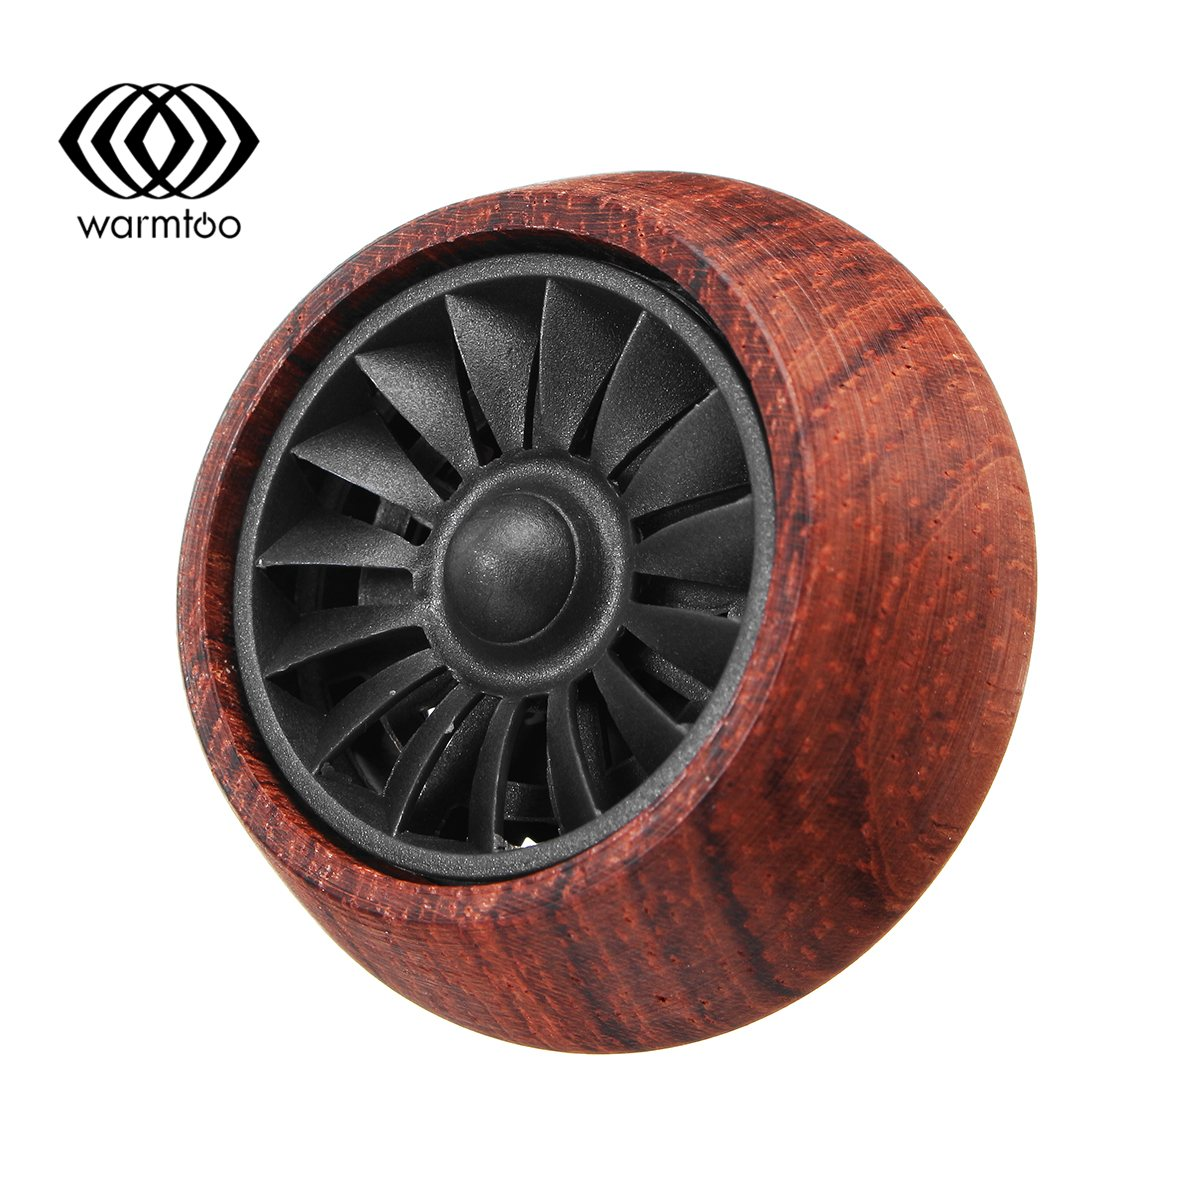 Warmtoo Practical Car Engine Styling Air Freshener Air Conditioning Perfume Vent Outlet Brown For Auto Decoration Air Force household appliances air purifier aroma diffuser for home car air freshener air conditioning outlet perfume fragrant fresheners